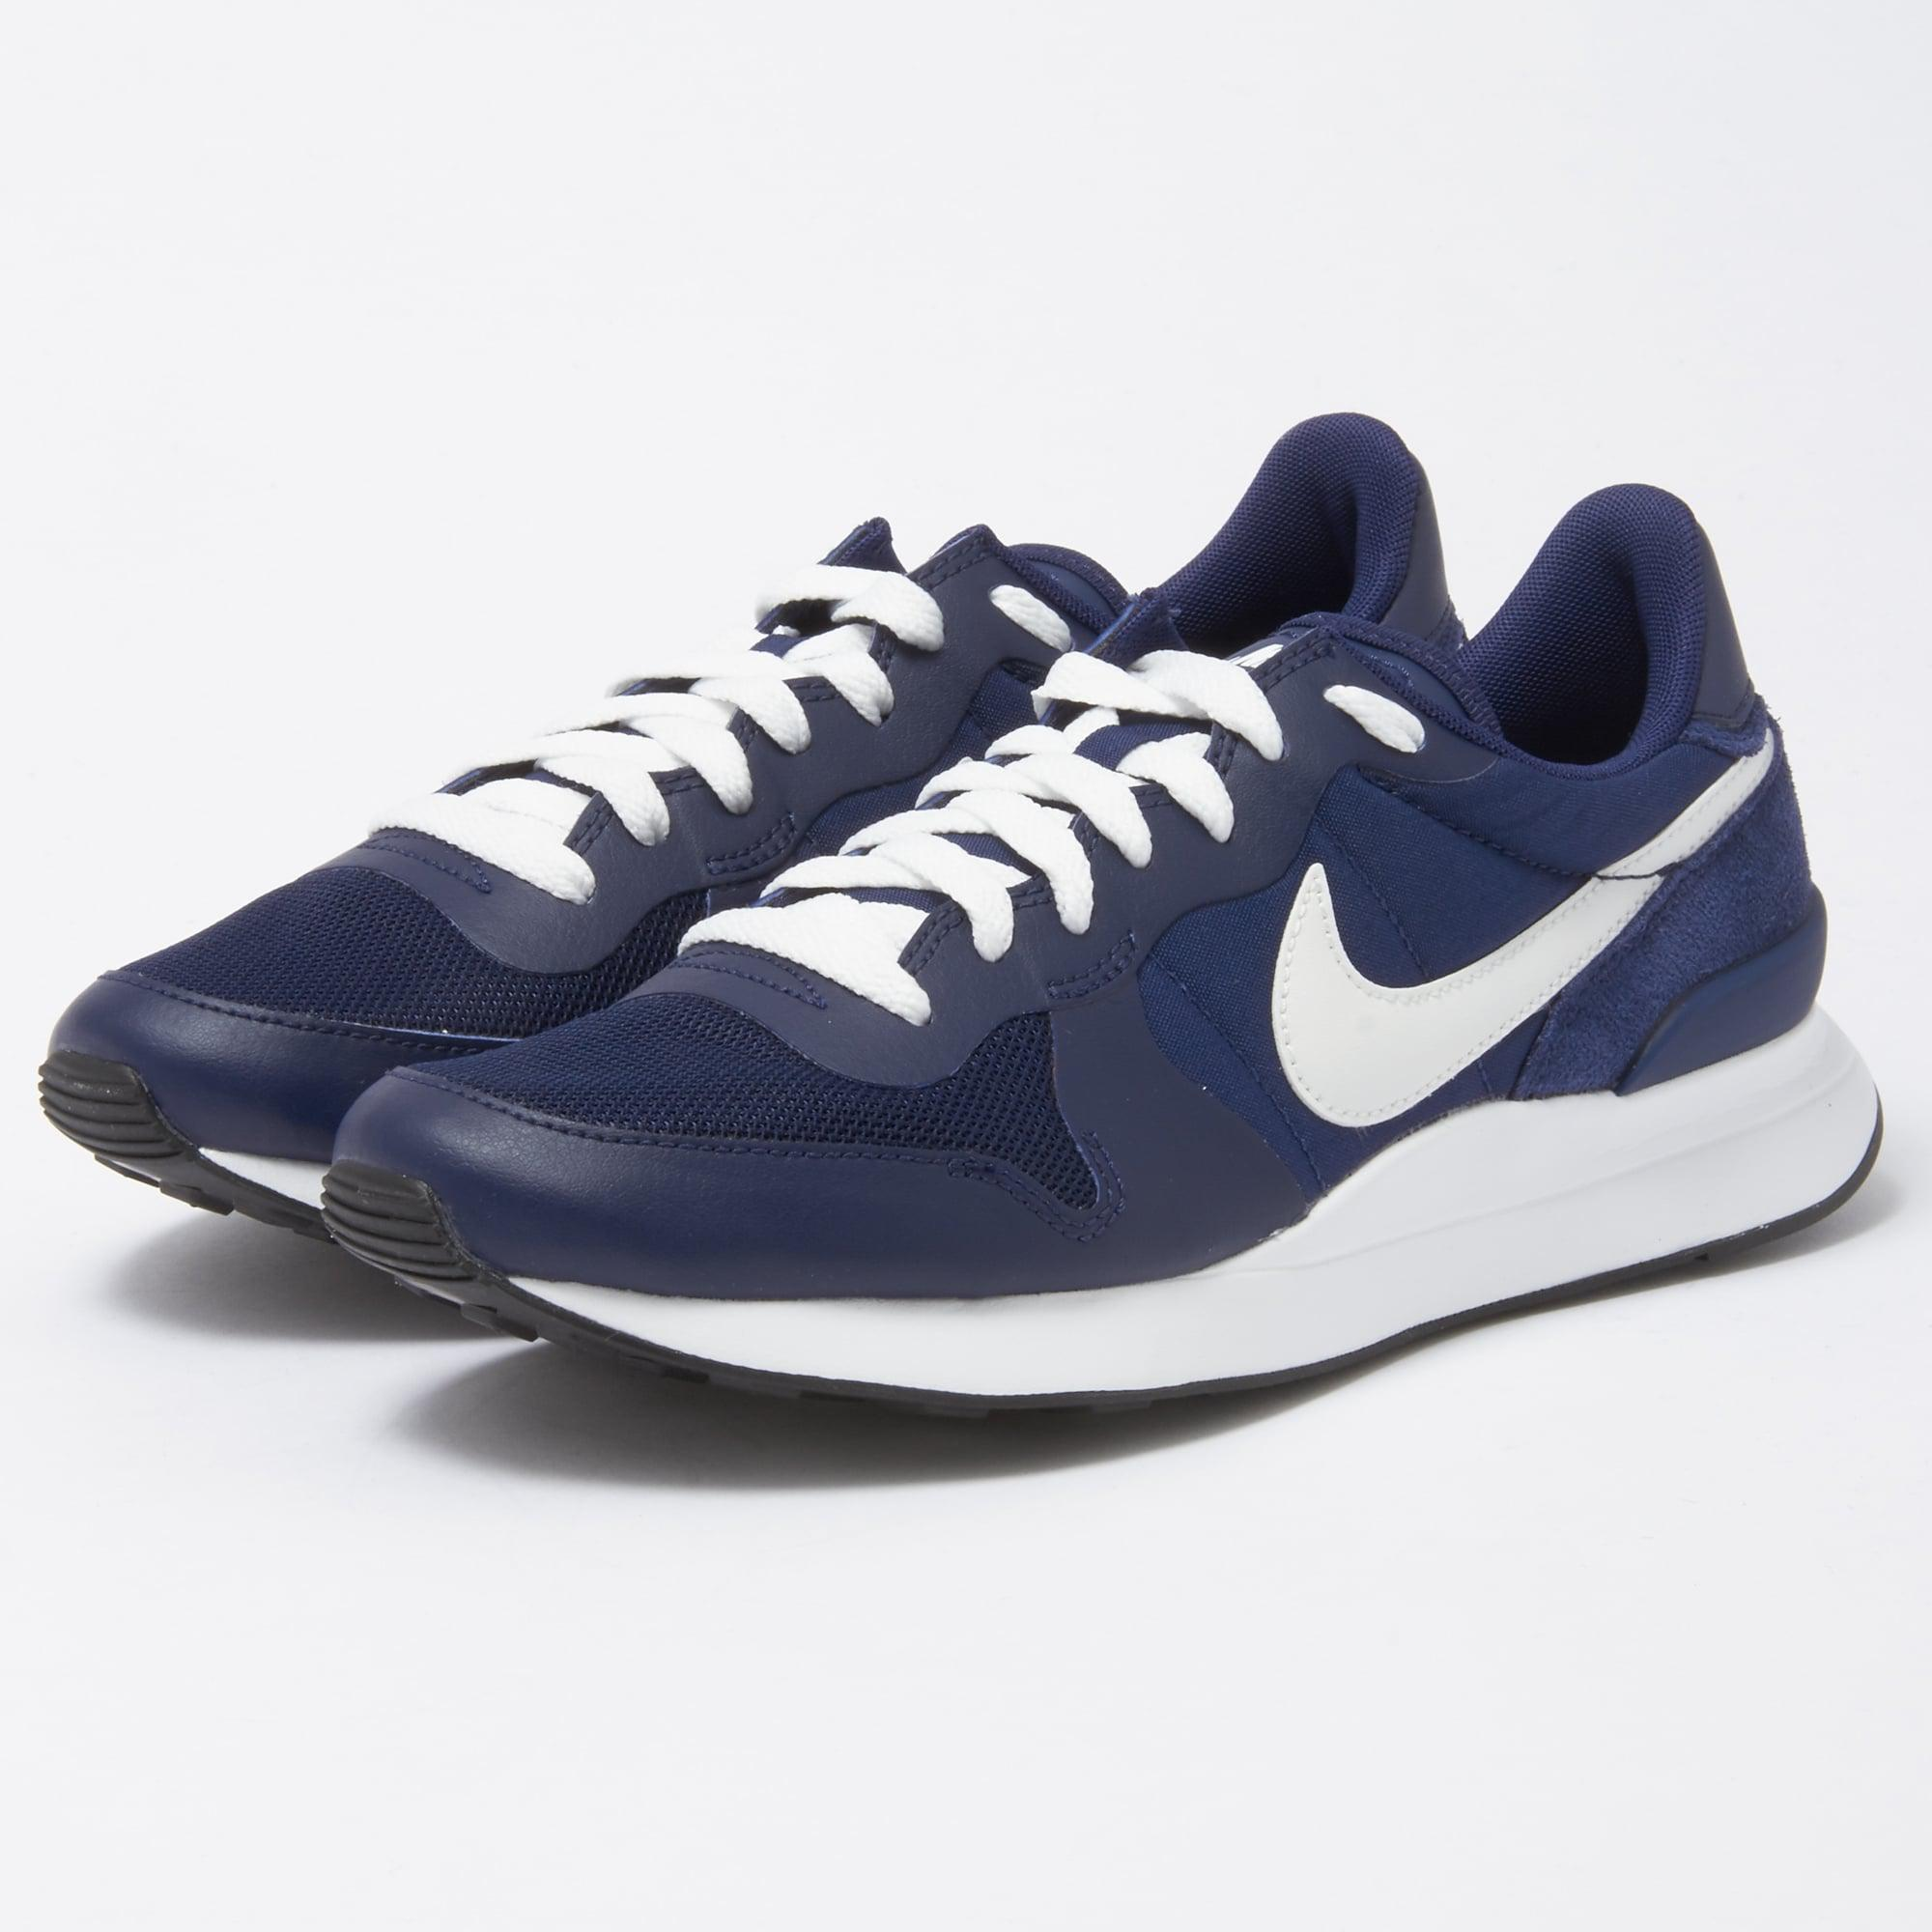 56efd1ce5c1 Nike Internationalist Lt17 in Blue for Men - Lyst